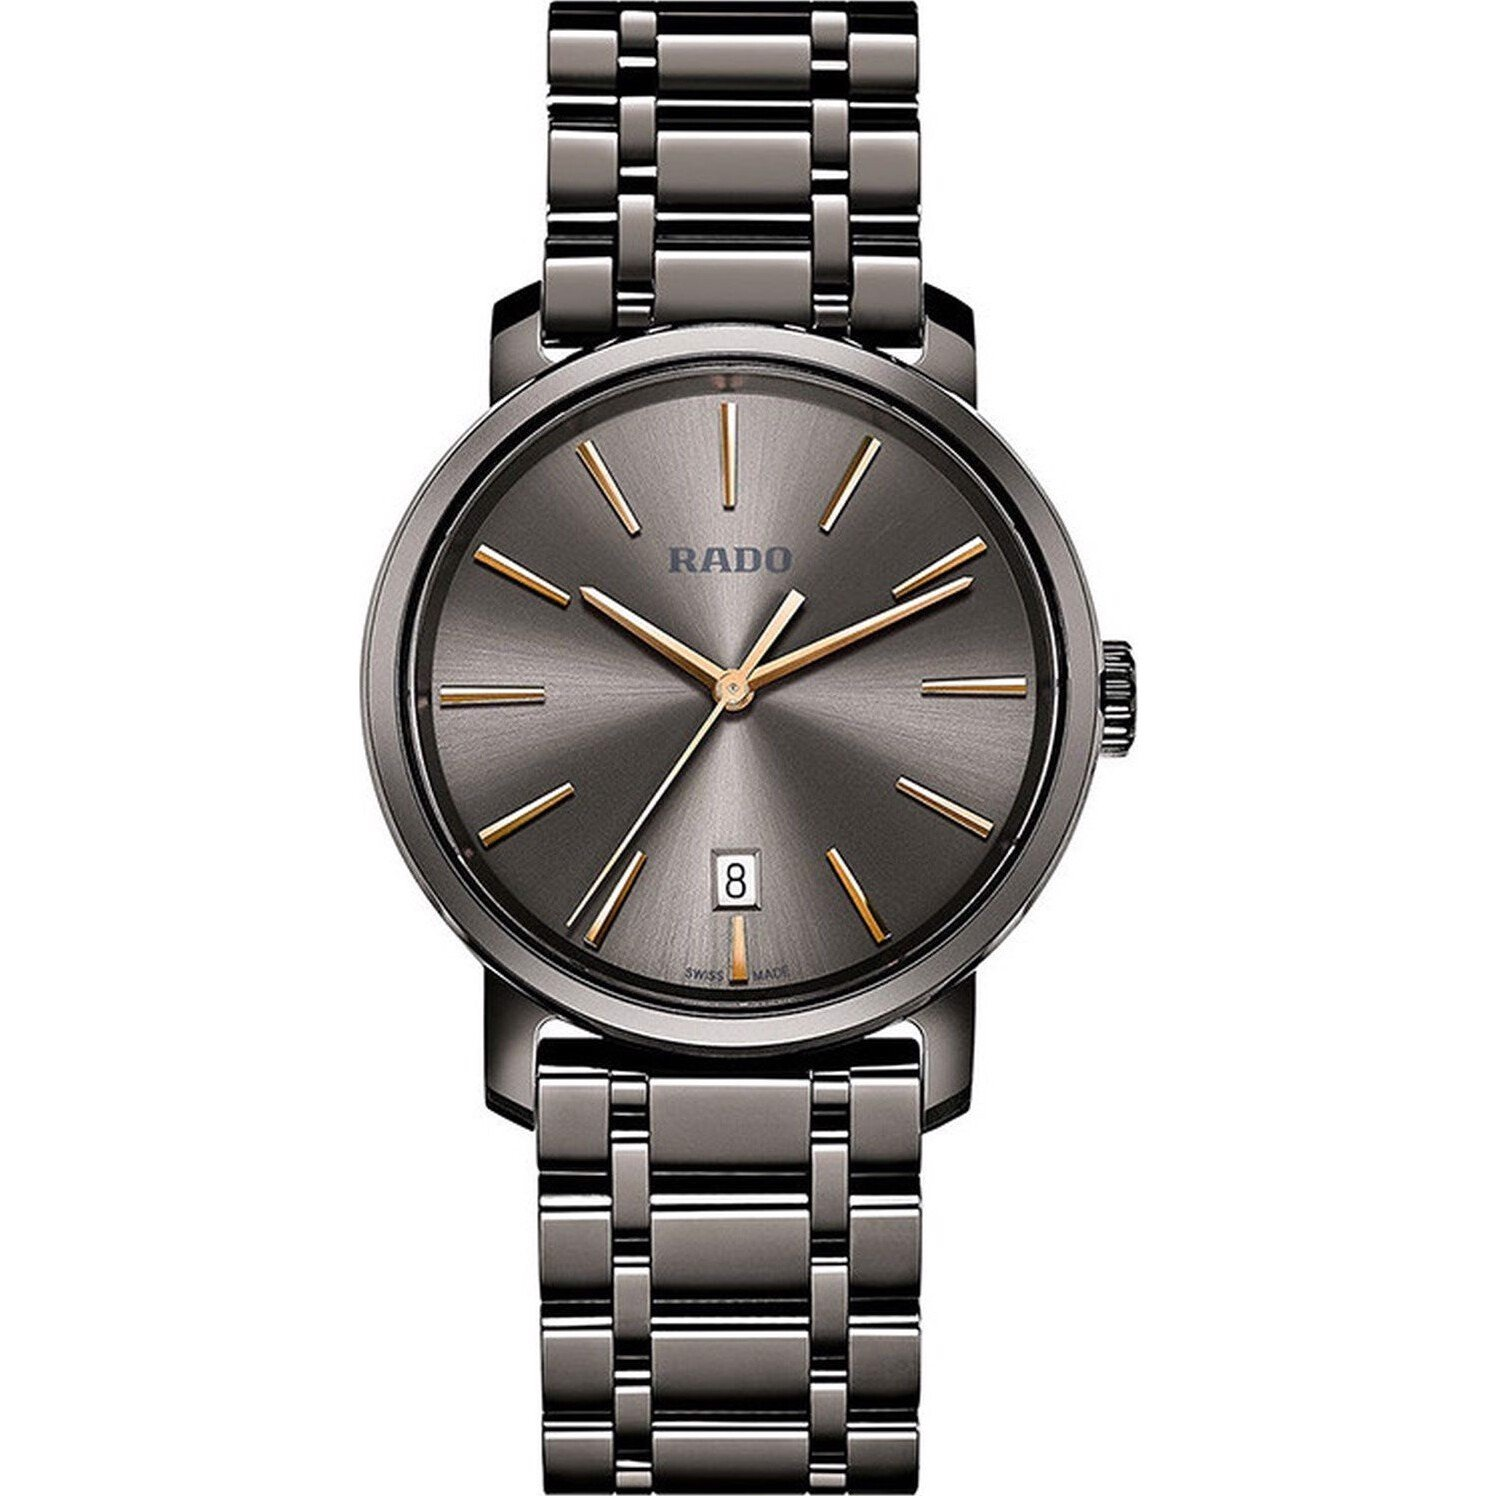 Rado Diamaster XL Plasma High-Tech Ceramic Watch 40